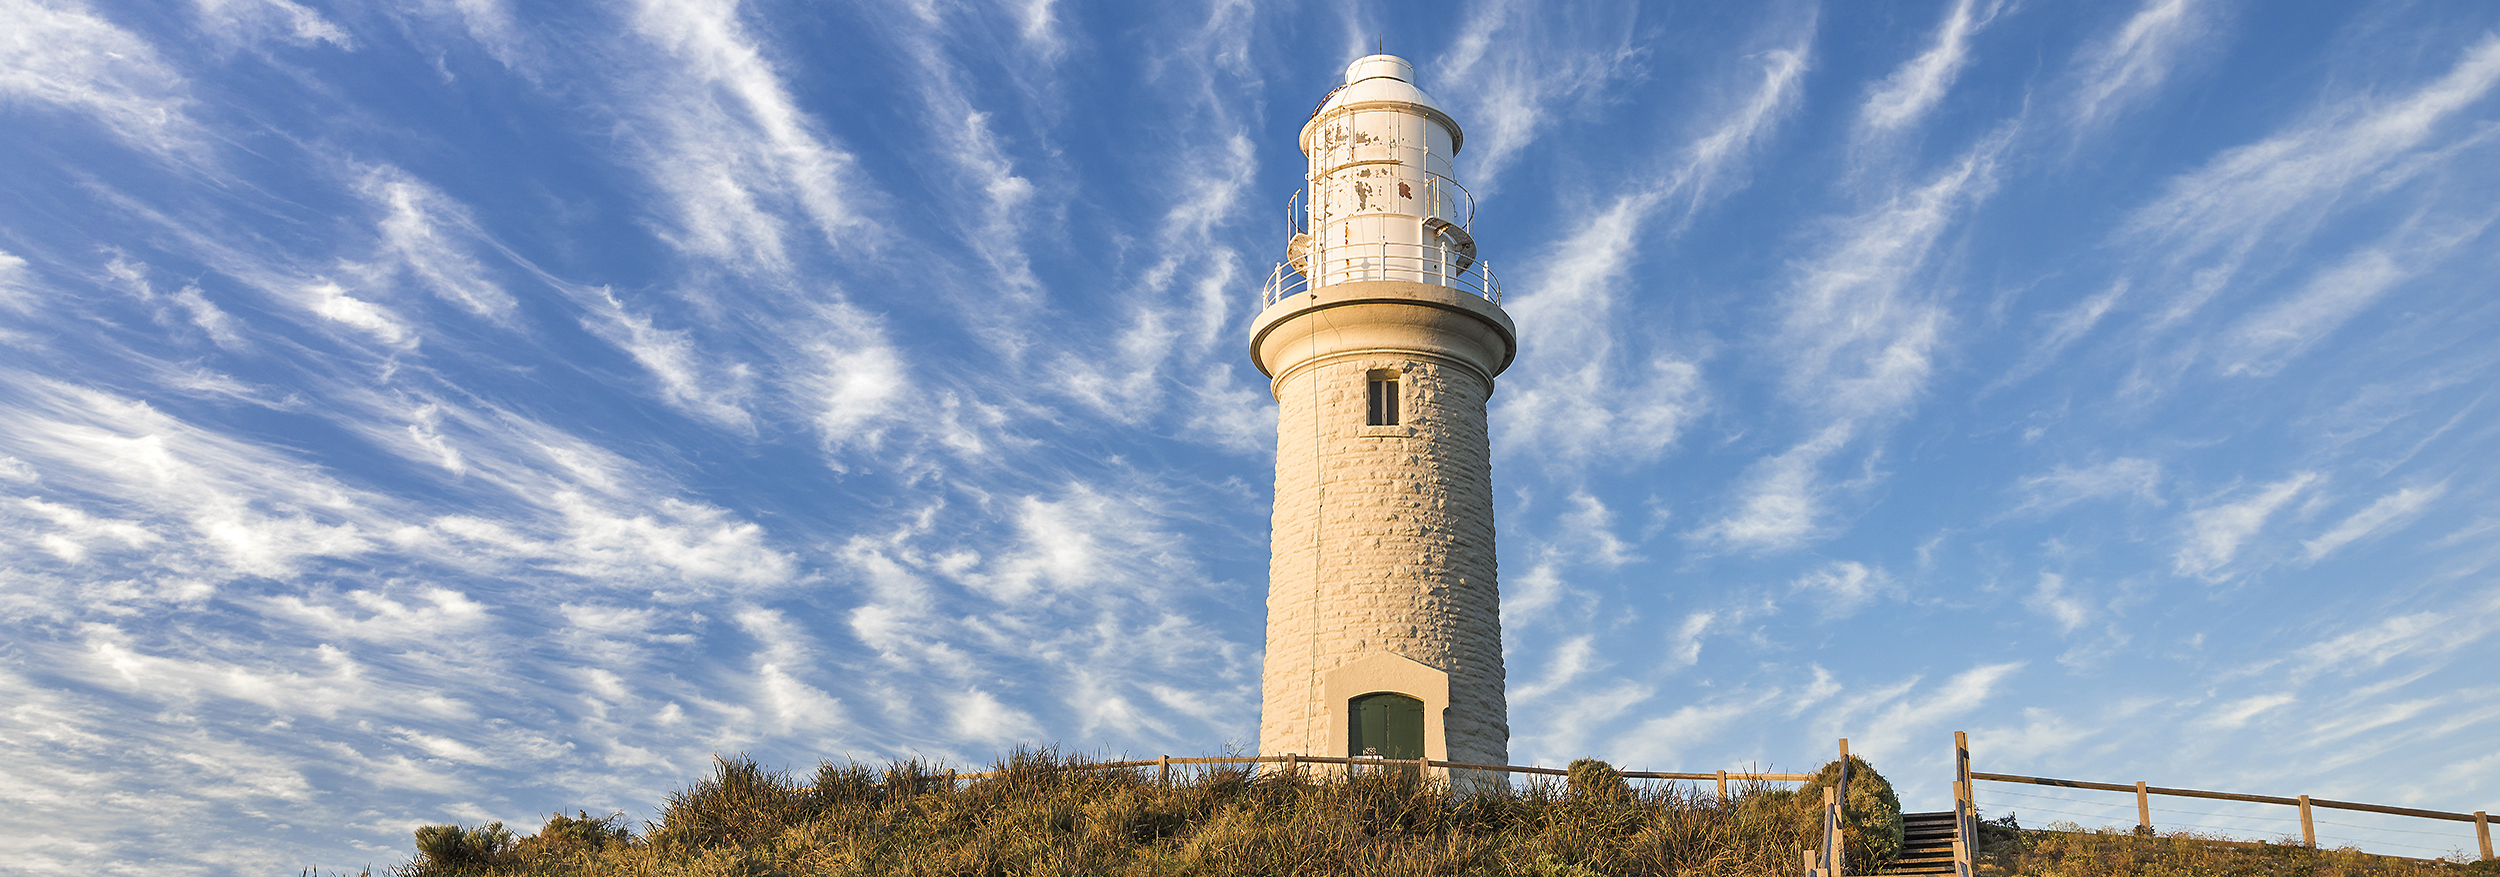 BATHURST LIGHTHOUSE - CIRRUS STREAKS